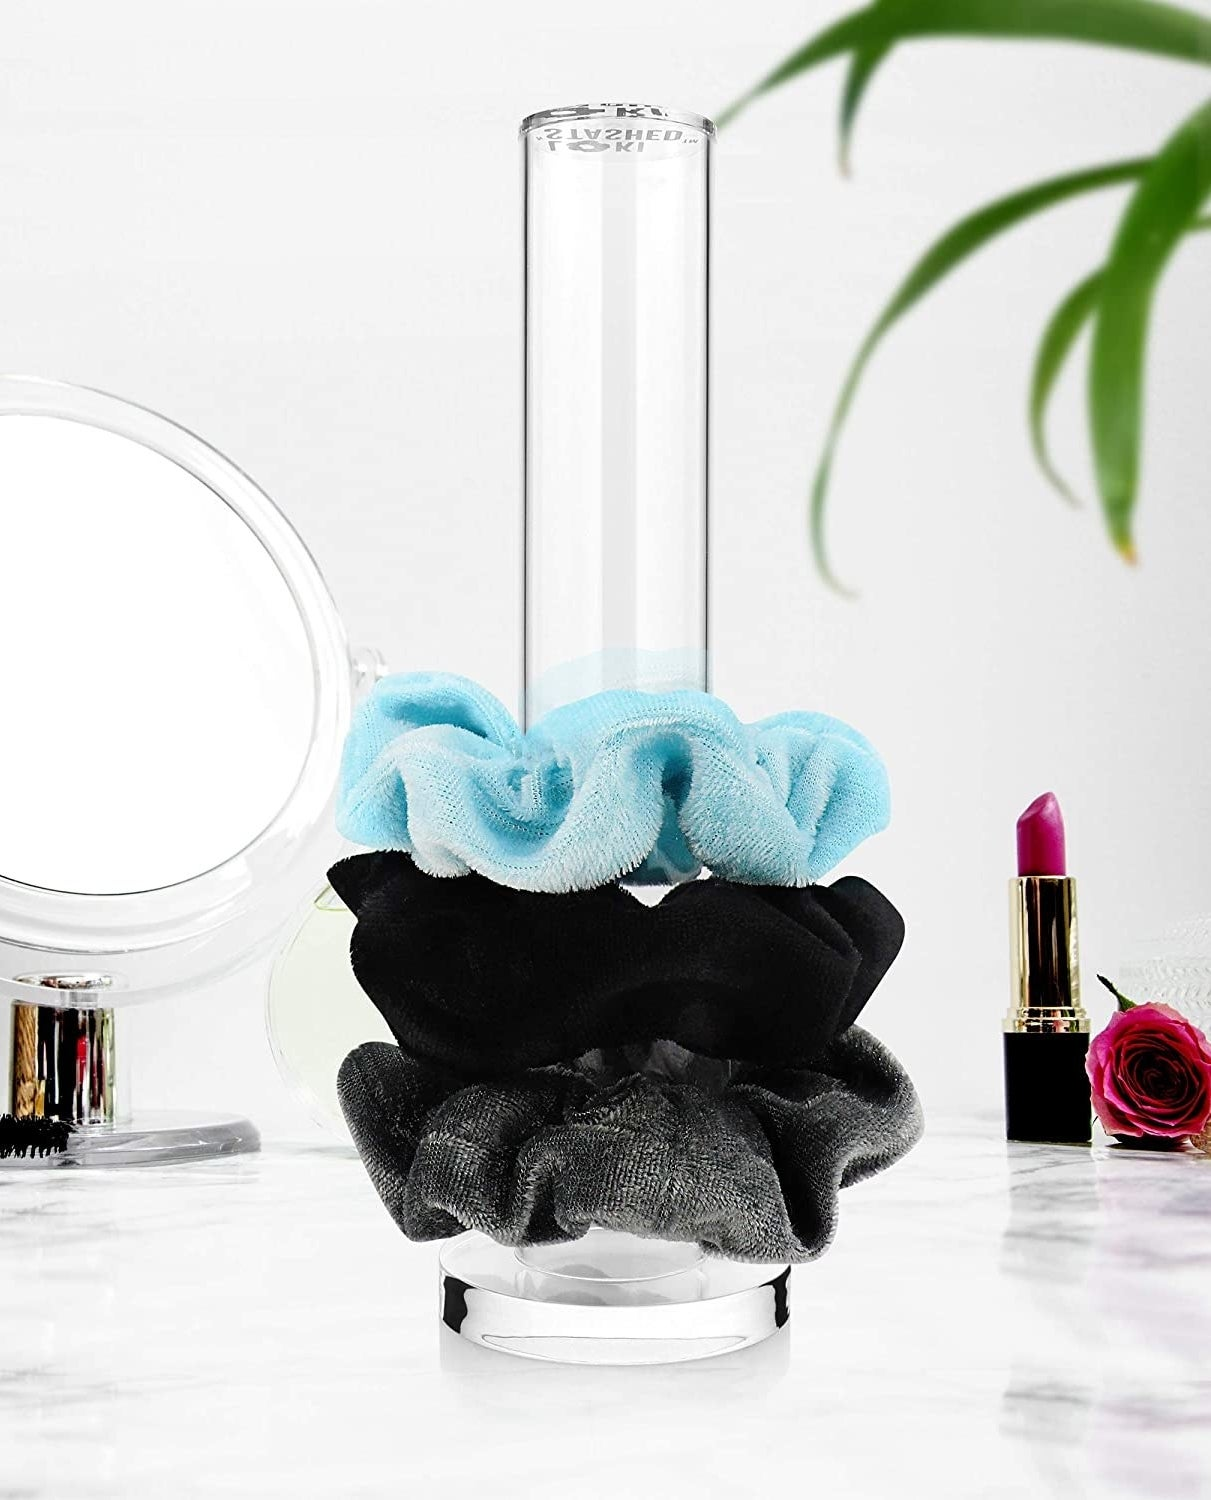 three scrunchies on the tower